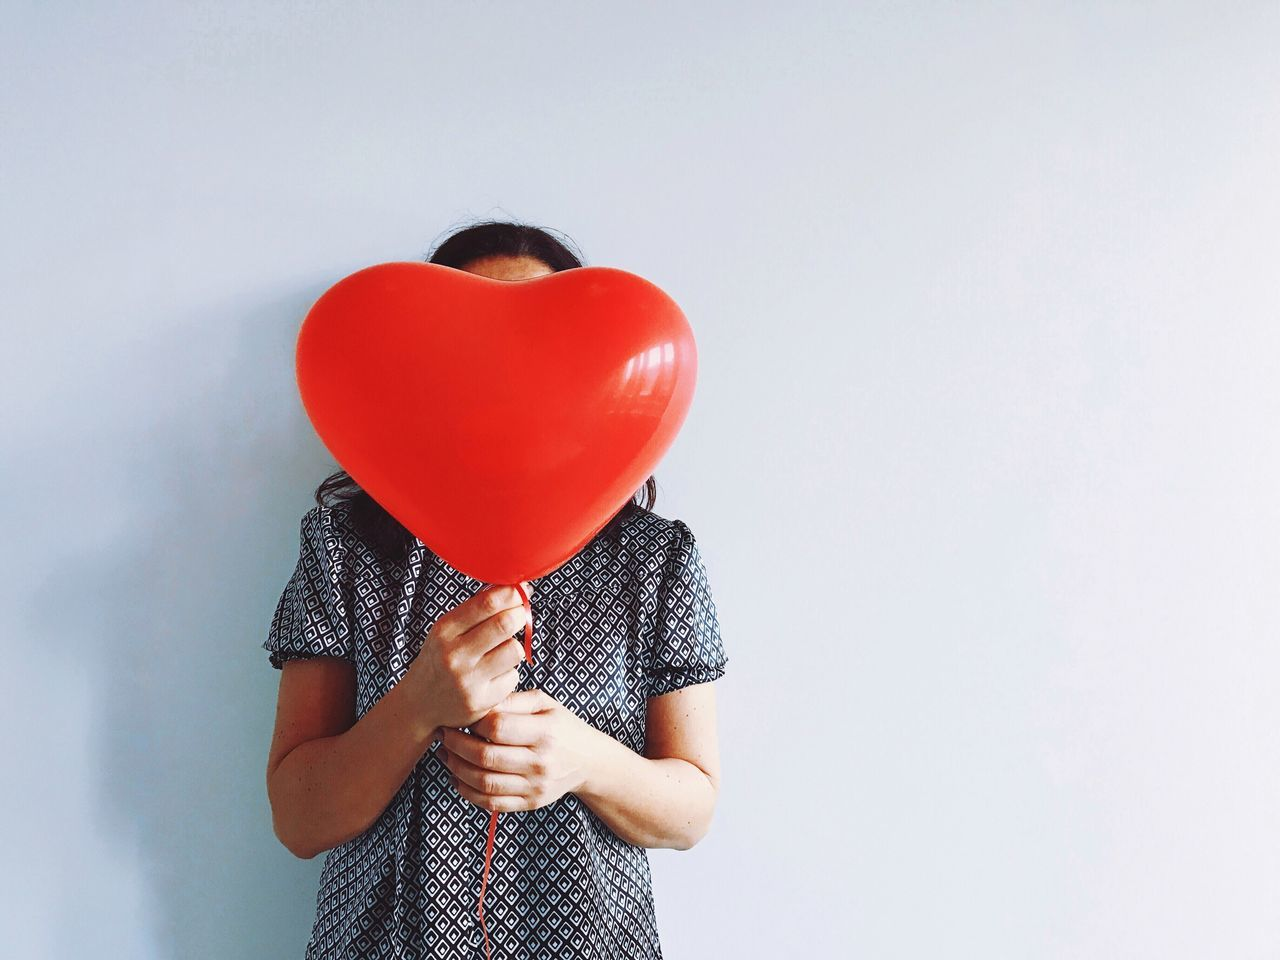 Balloon Holding One Person Helium Balloon Studio Shot White Background Adults Only Women Real People Human Hand Human Body Part Day Women Around The World